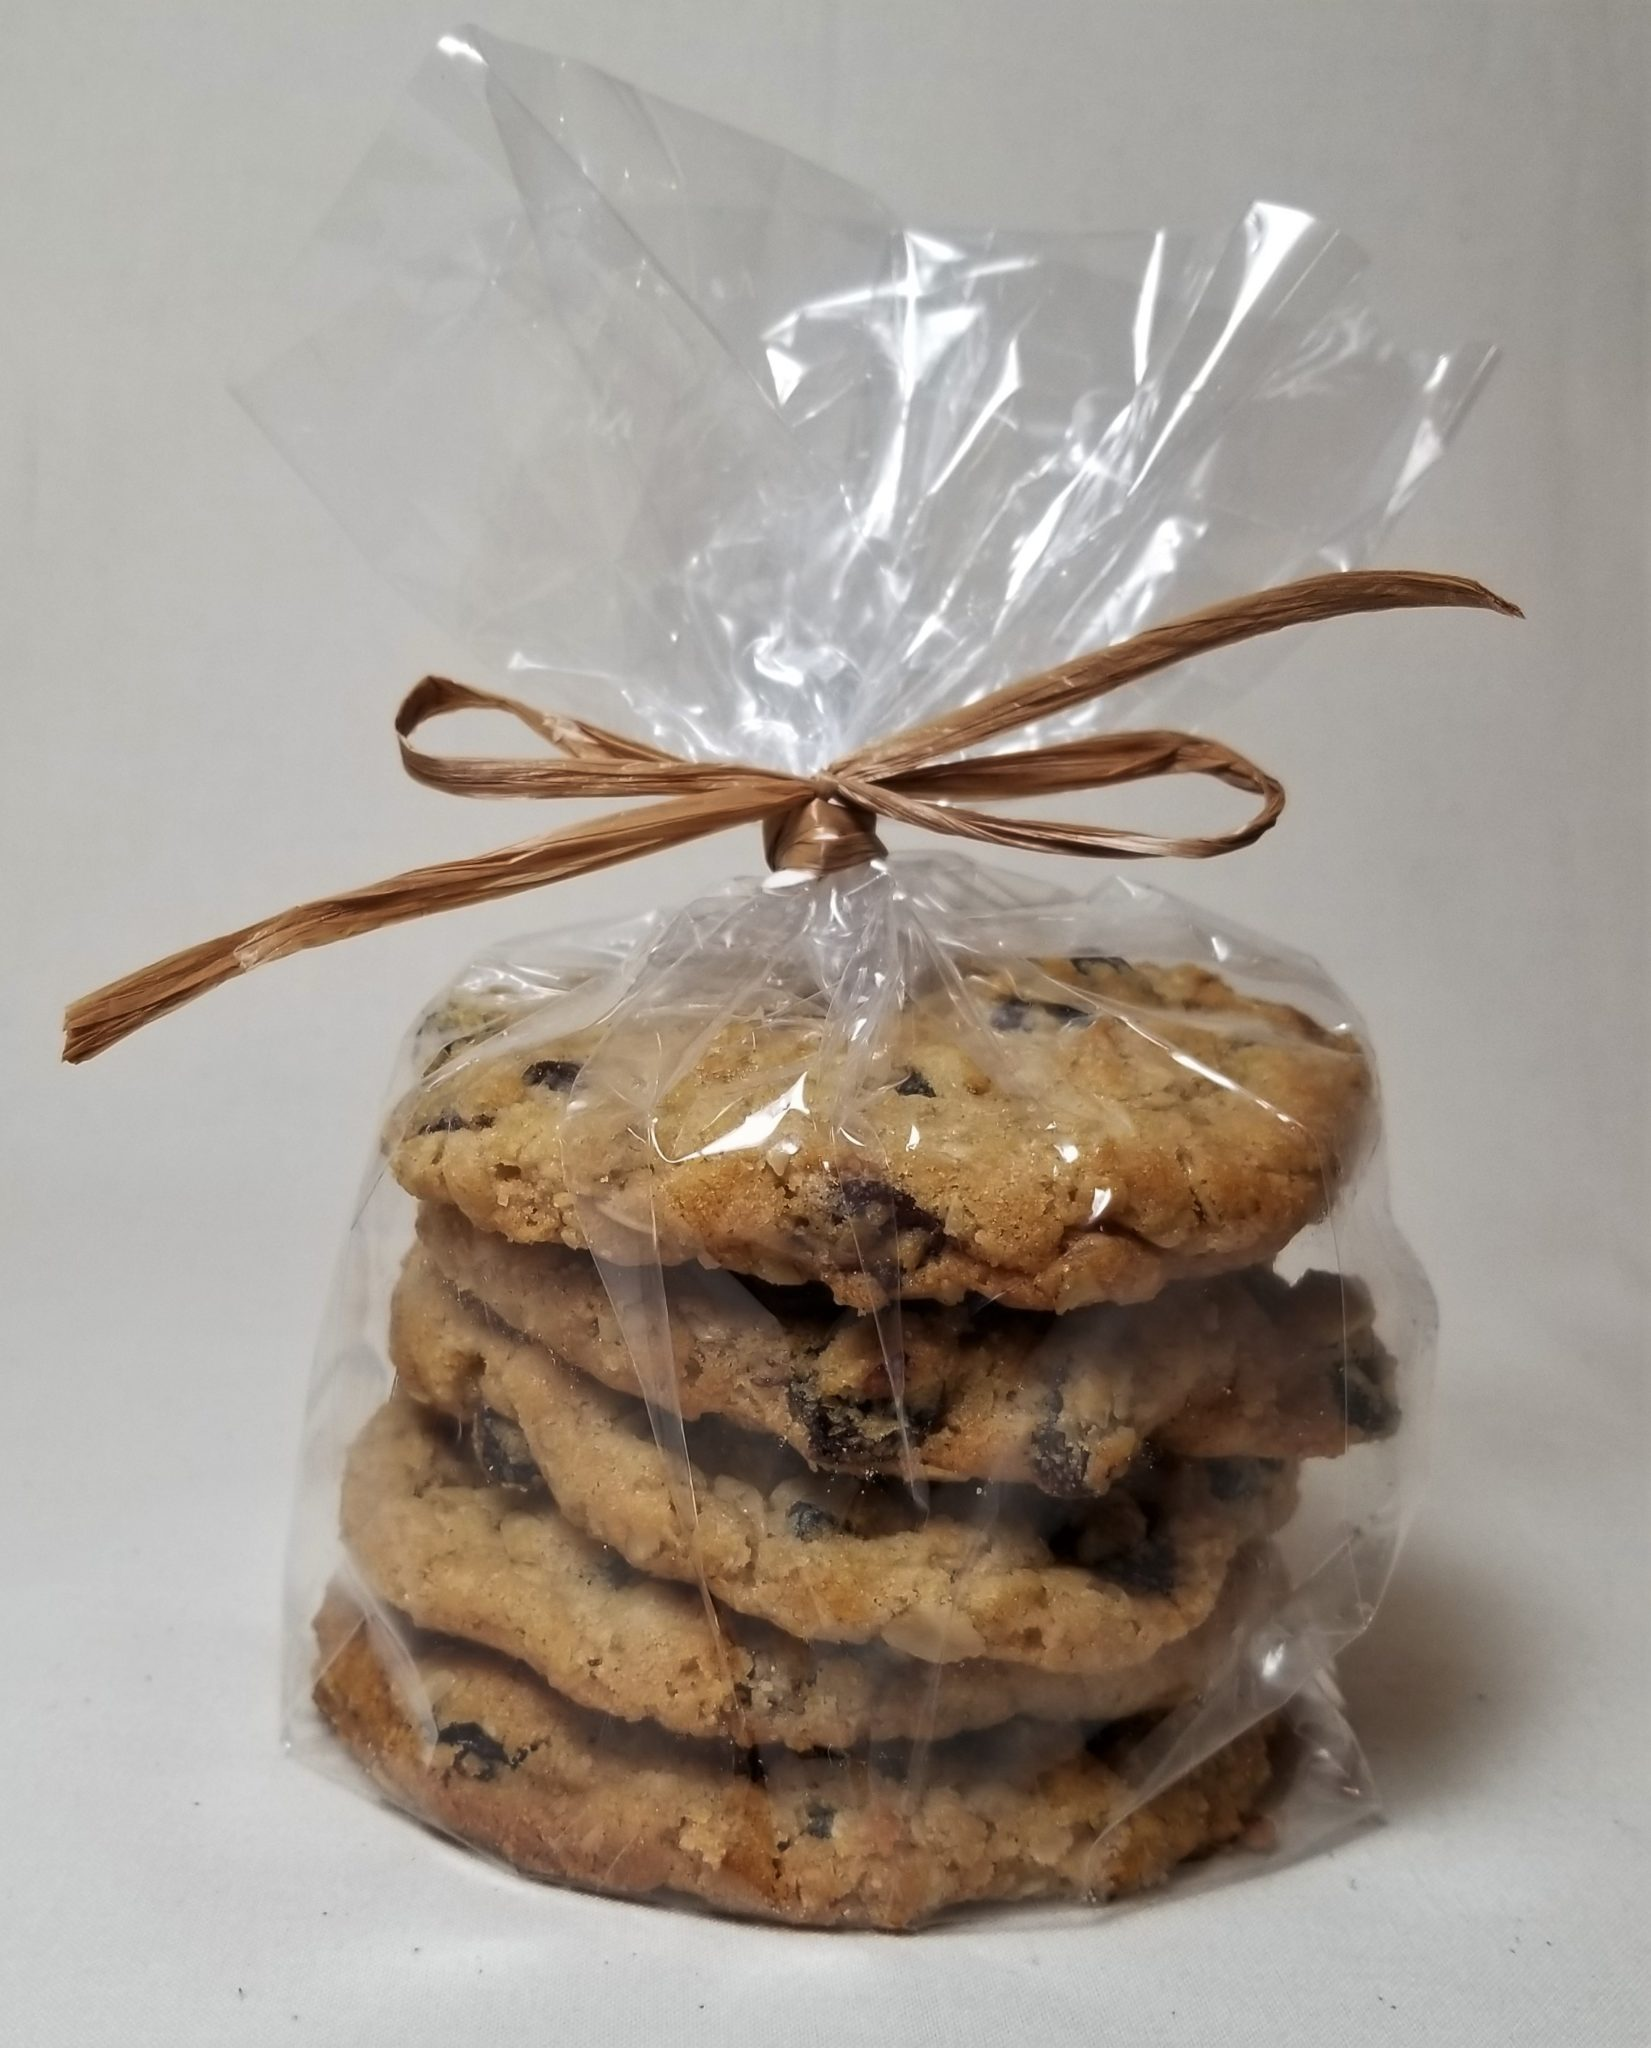 Stack of five Oatmeal Raisin Cookies, individually wrapped inside a cello sleeve and tied with a brown raffia ribbon.